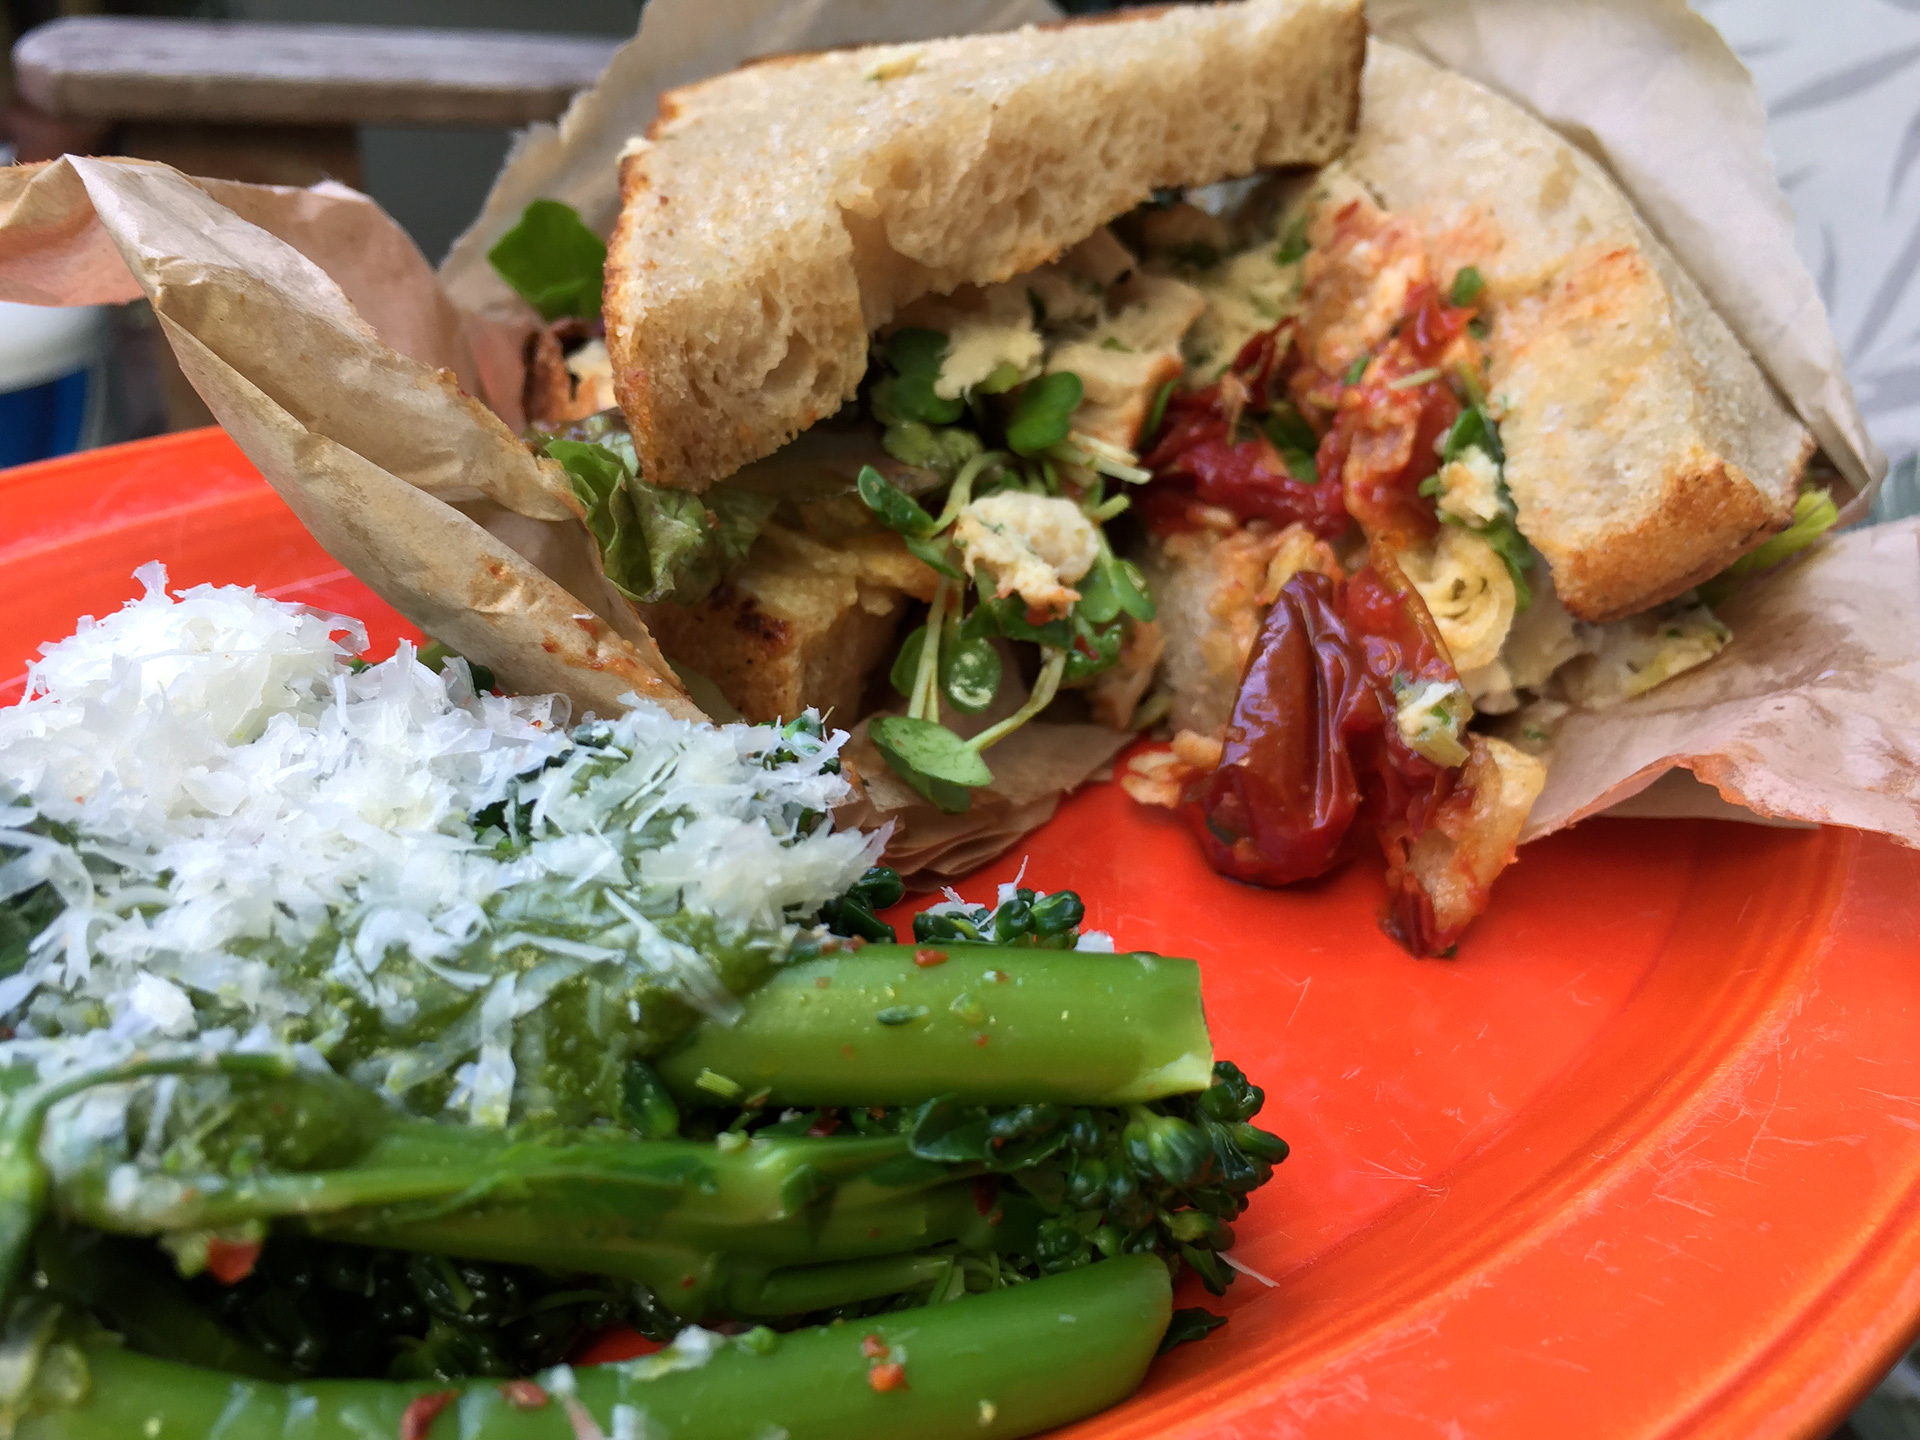 Poached local albacore sandwich on Josey Baker bread with a side of broccoli rabe with chermoula dressing